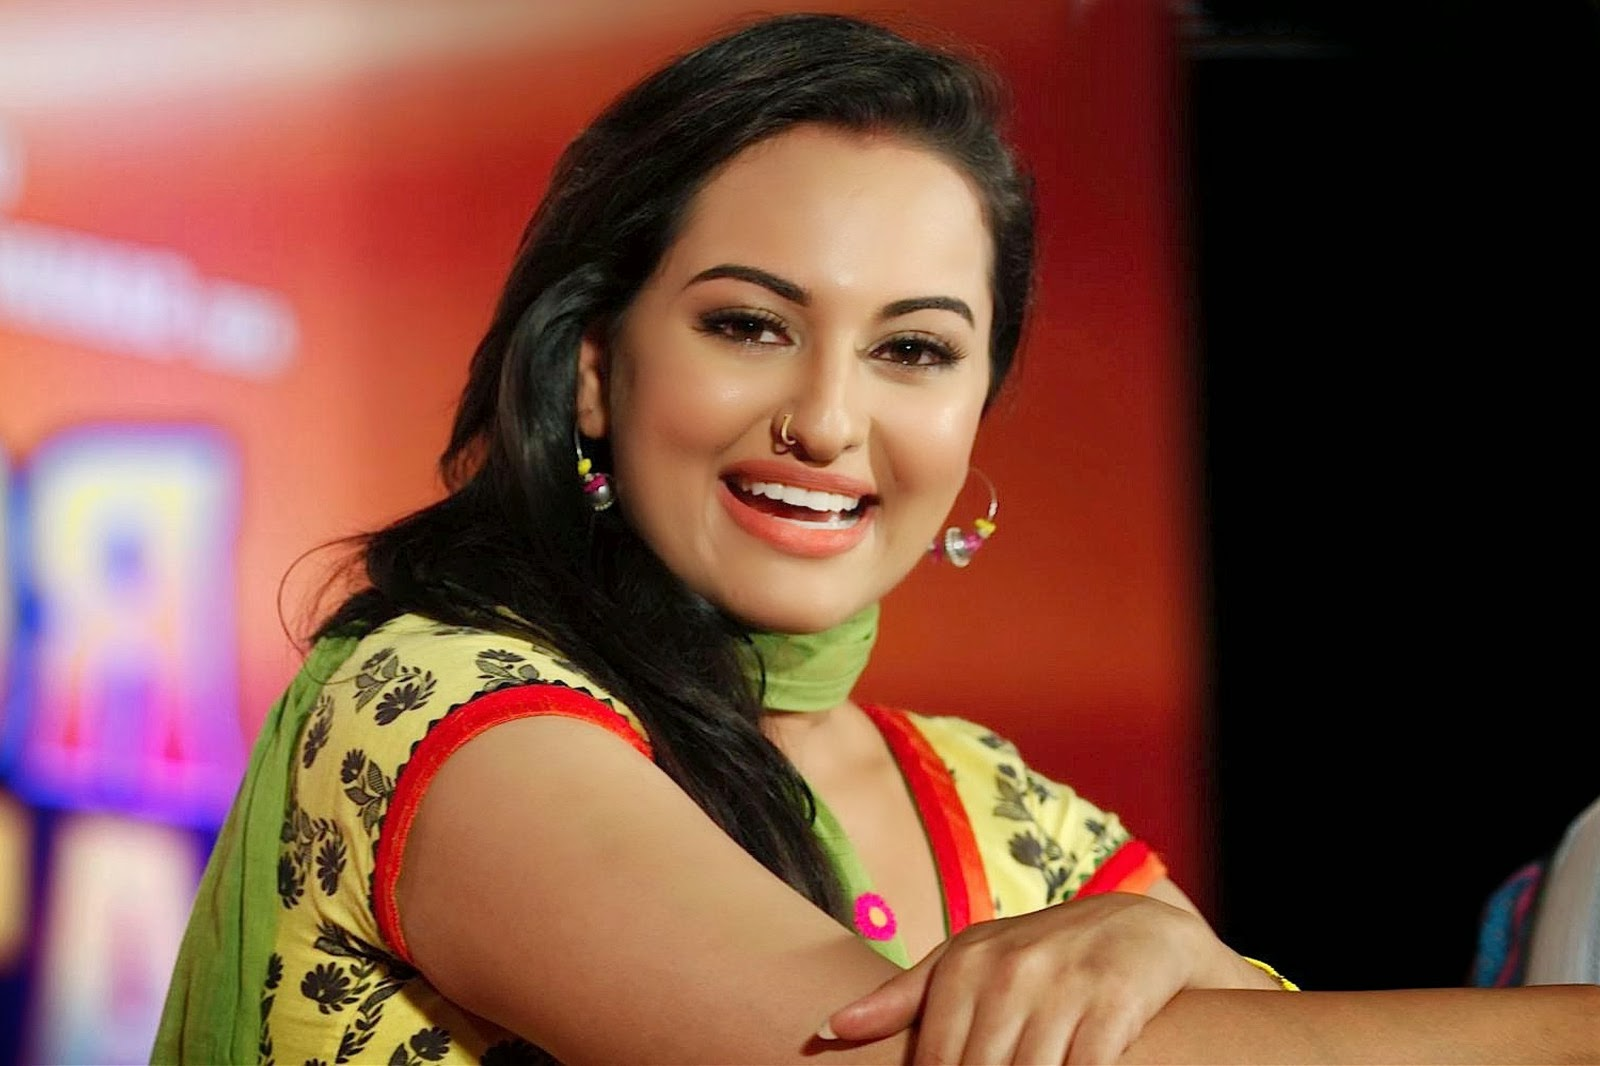 sonakshi sinha bollywood actress hot smiling latest wallpapers photo